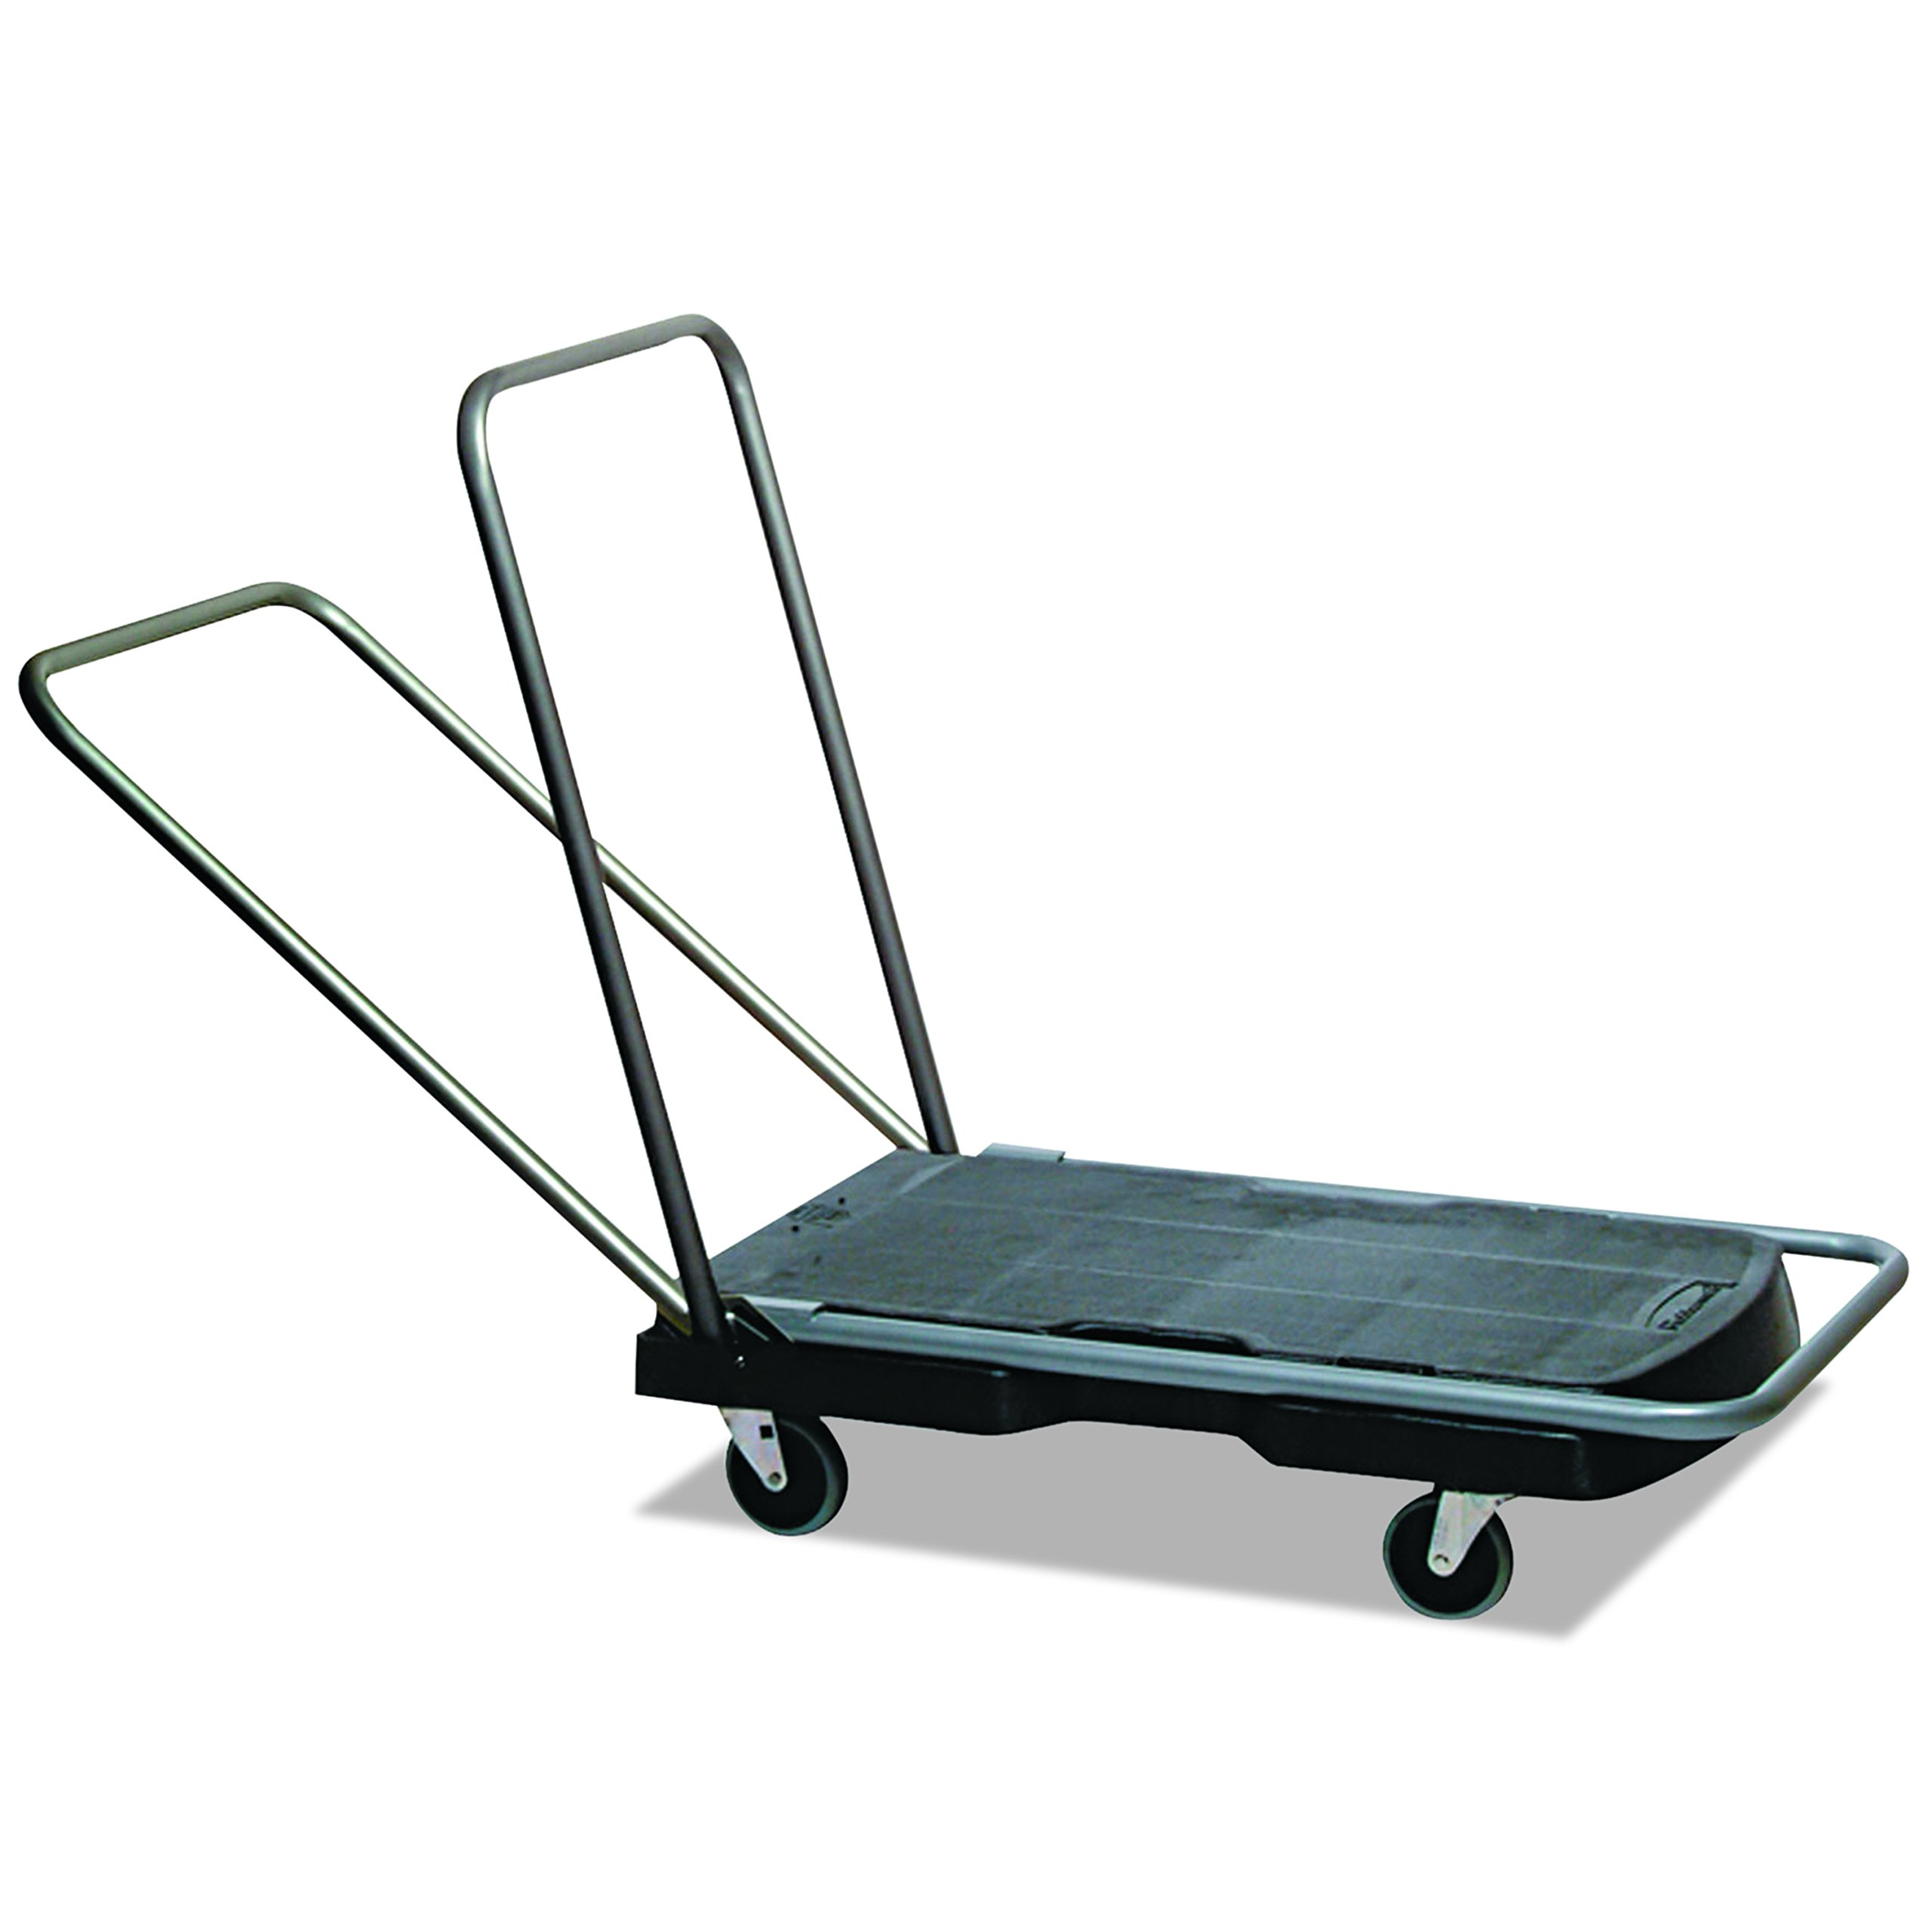 "Rubbermaid Commercial Tripple Trolley Utility-Duty Home/Office Cart, 250 lb Capacity, 20 1/2"" x 32 1/2"", Black (FG440000BLA)"